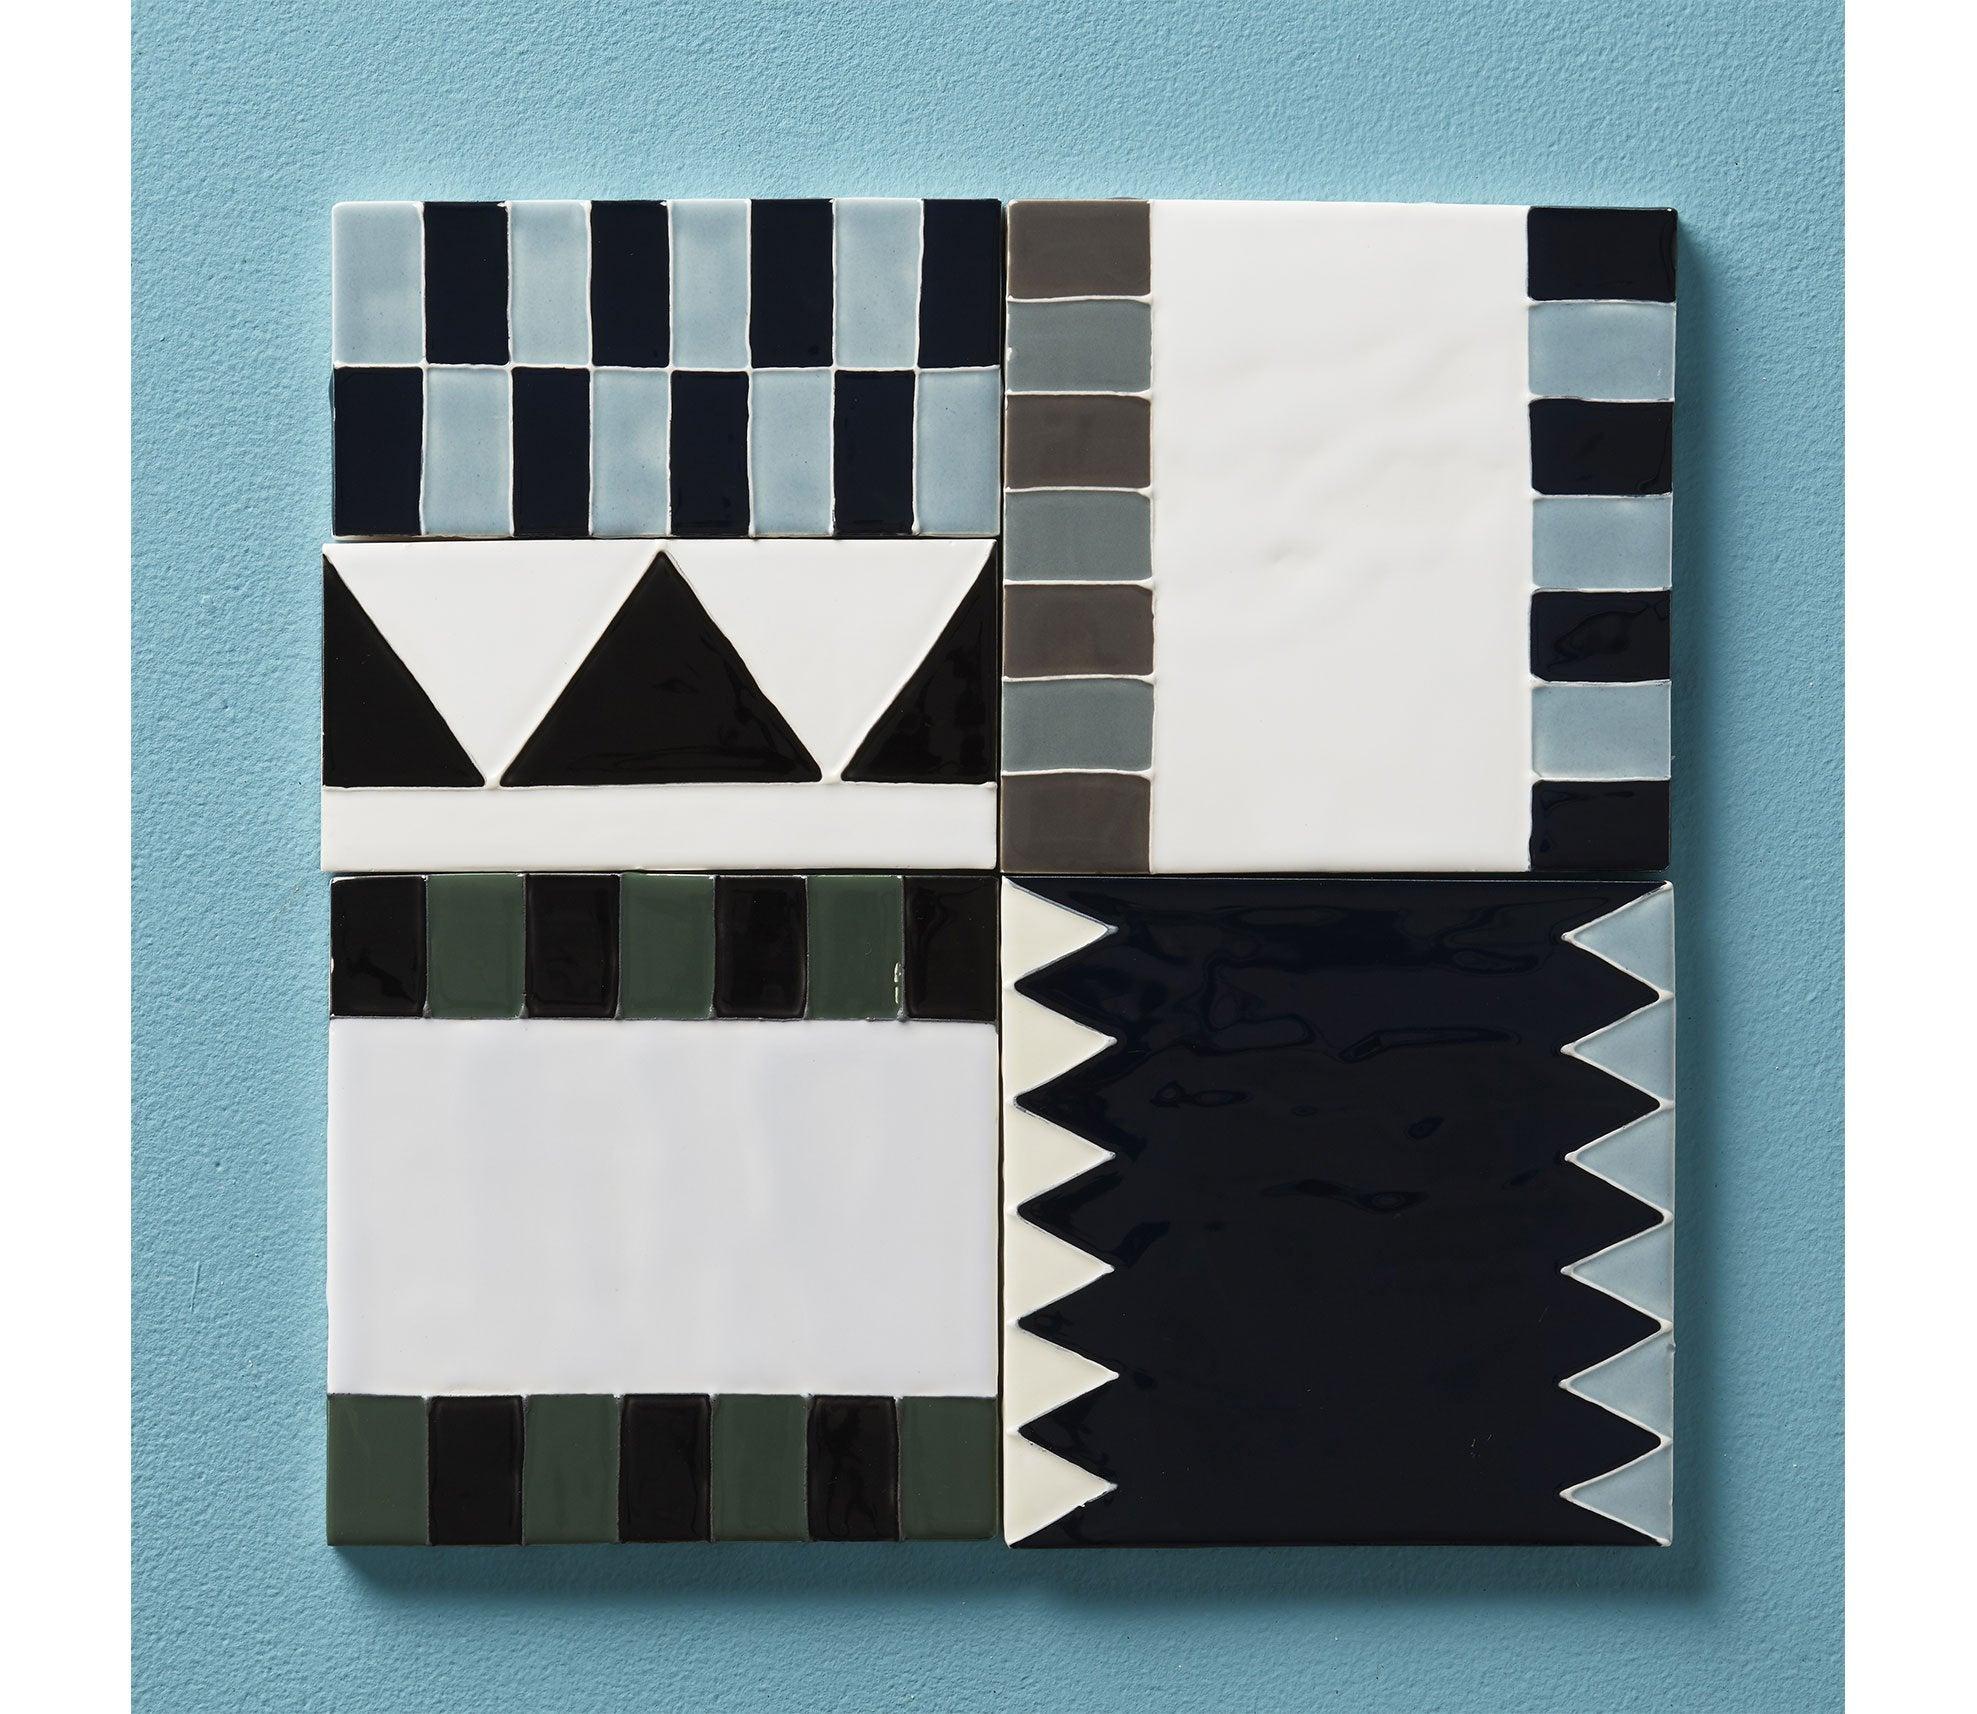 Hanley Tube Lined Decorative Tiles Product Image 56